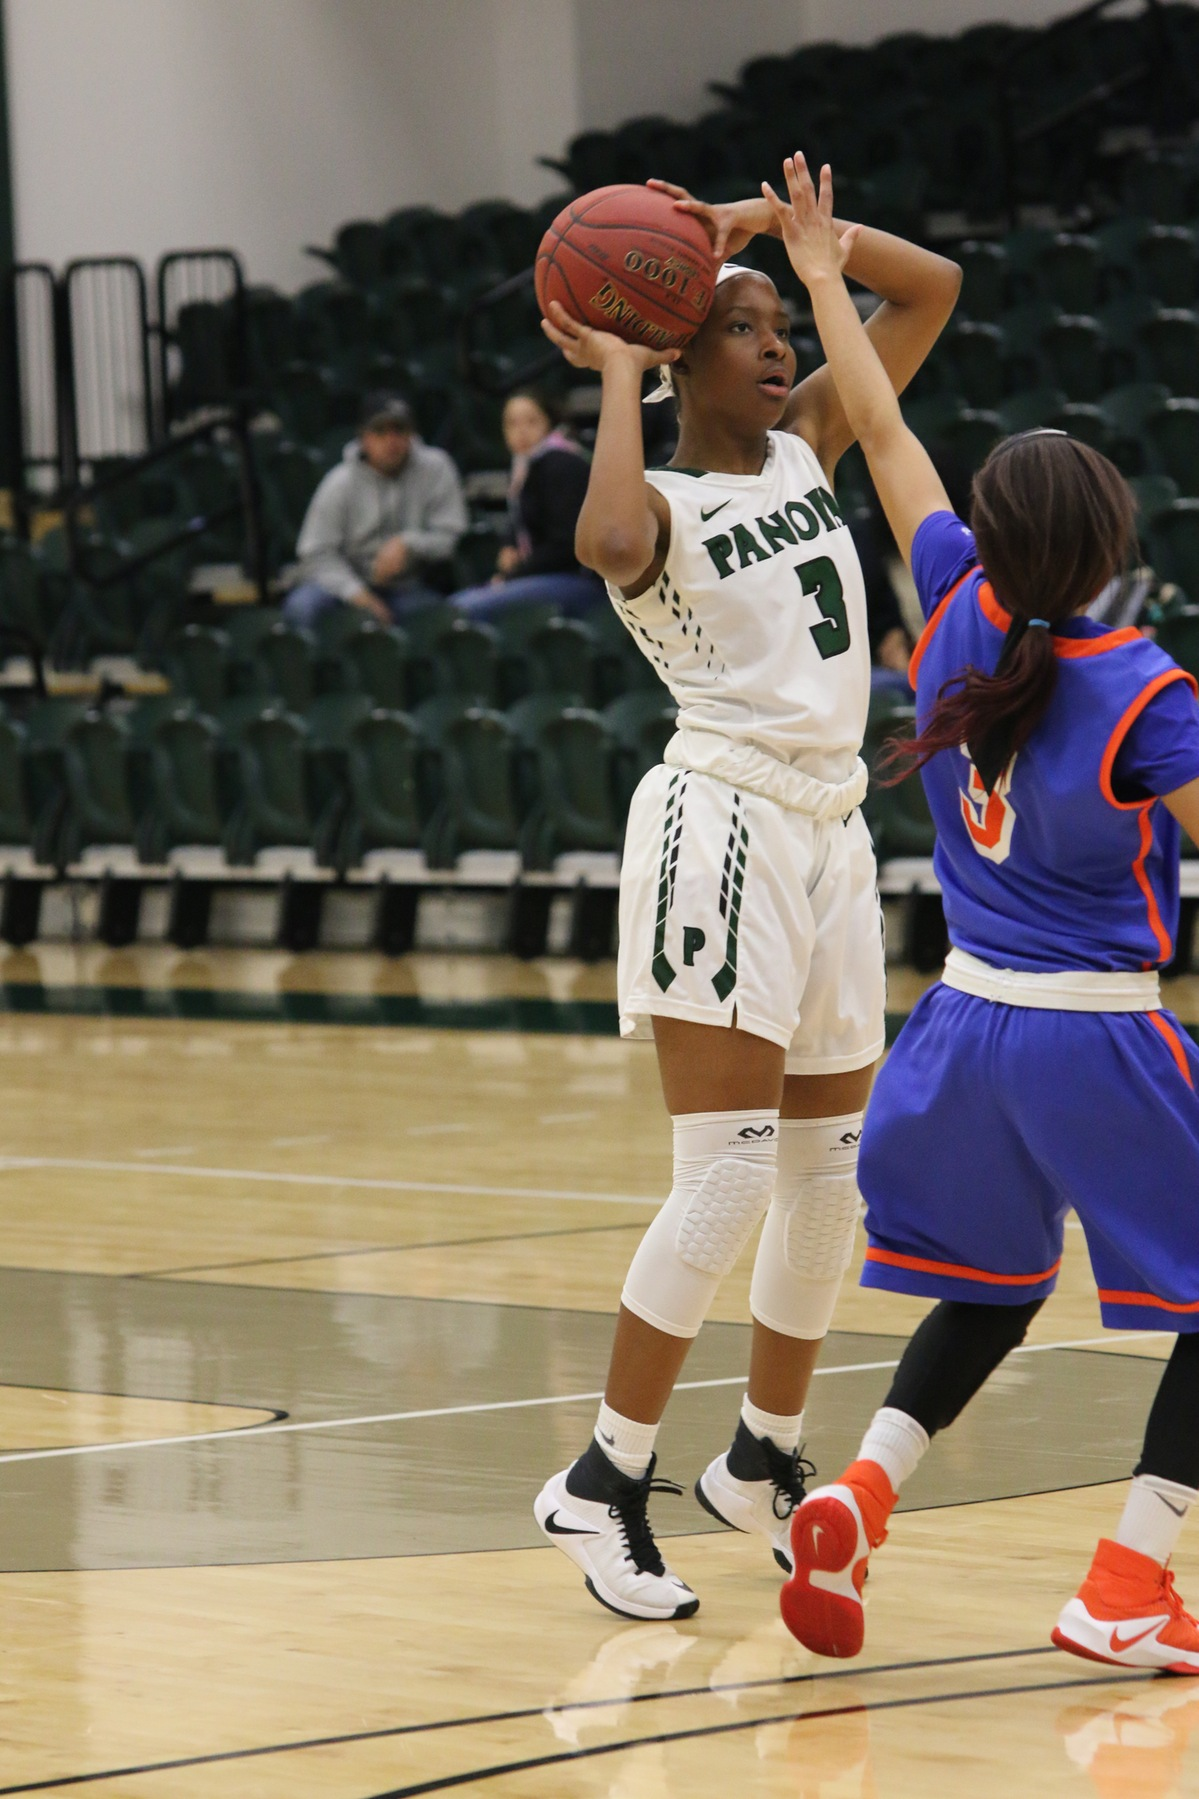 Sophomore Charlynn Perry hits 6 3-pointers on the night, and scoring a new career high of 21 points.